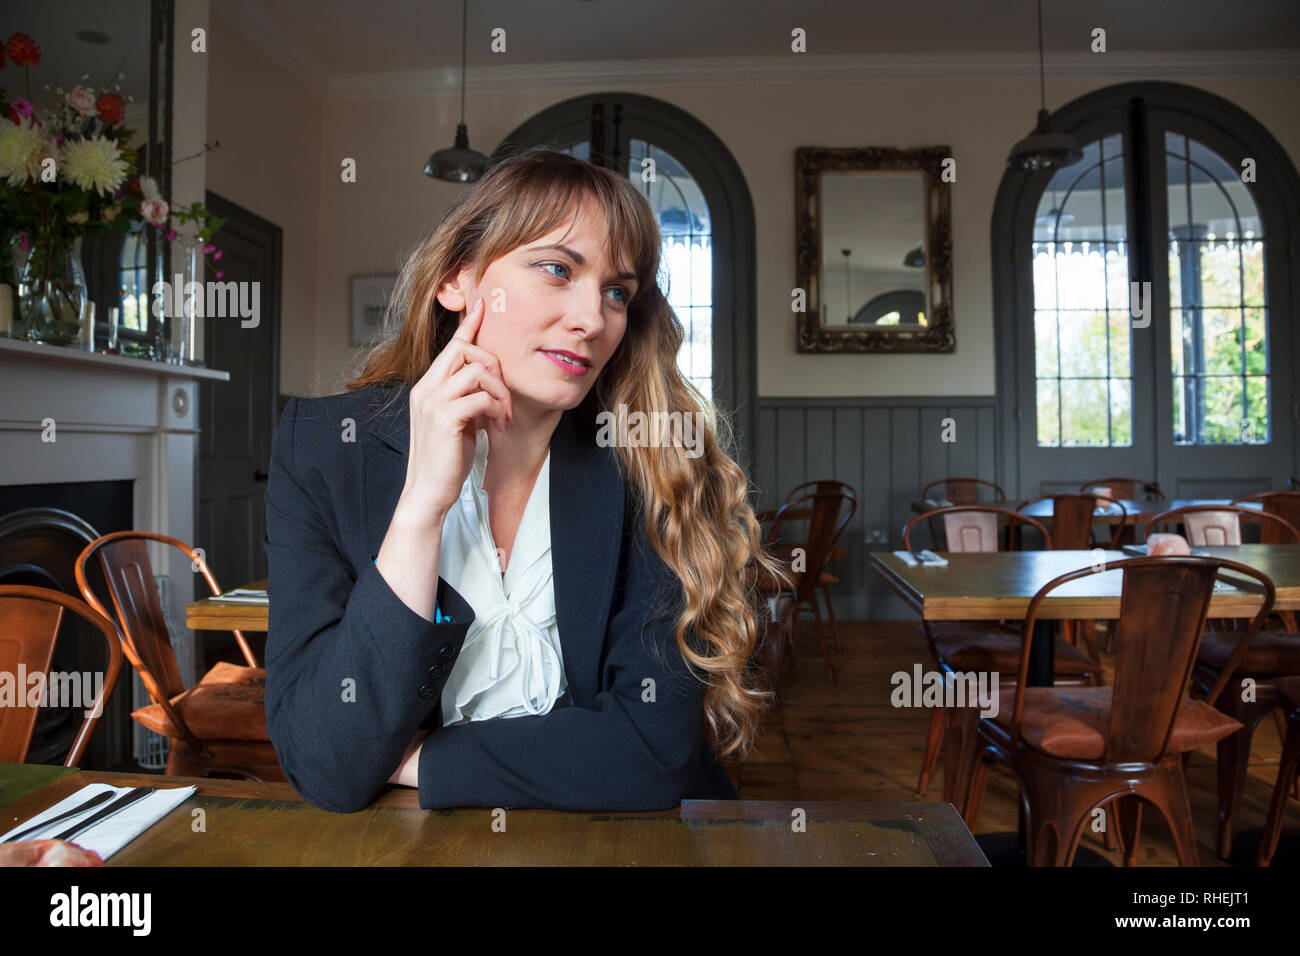 Lady posing for portrait at table in Roydon Station, Restaurant, Essex - Stock Image